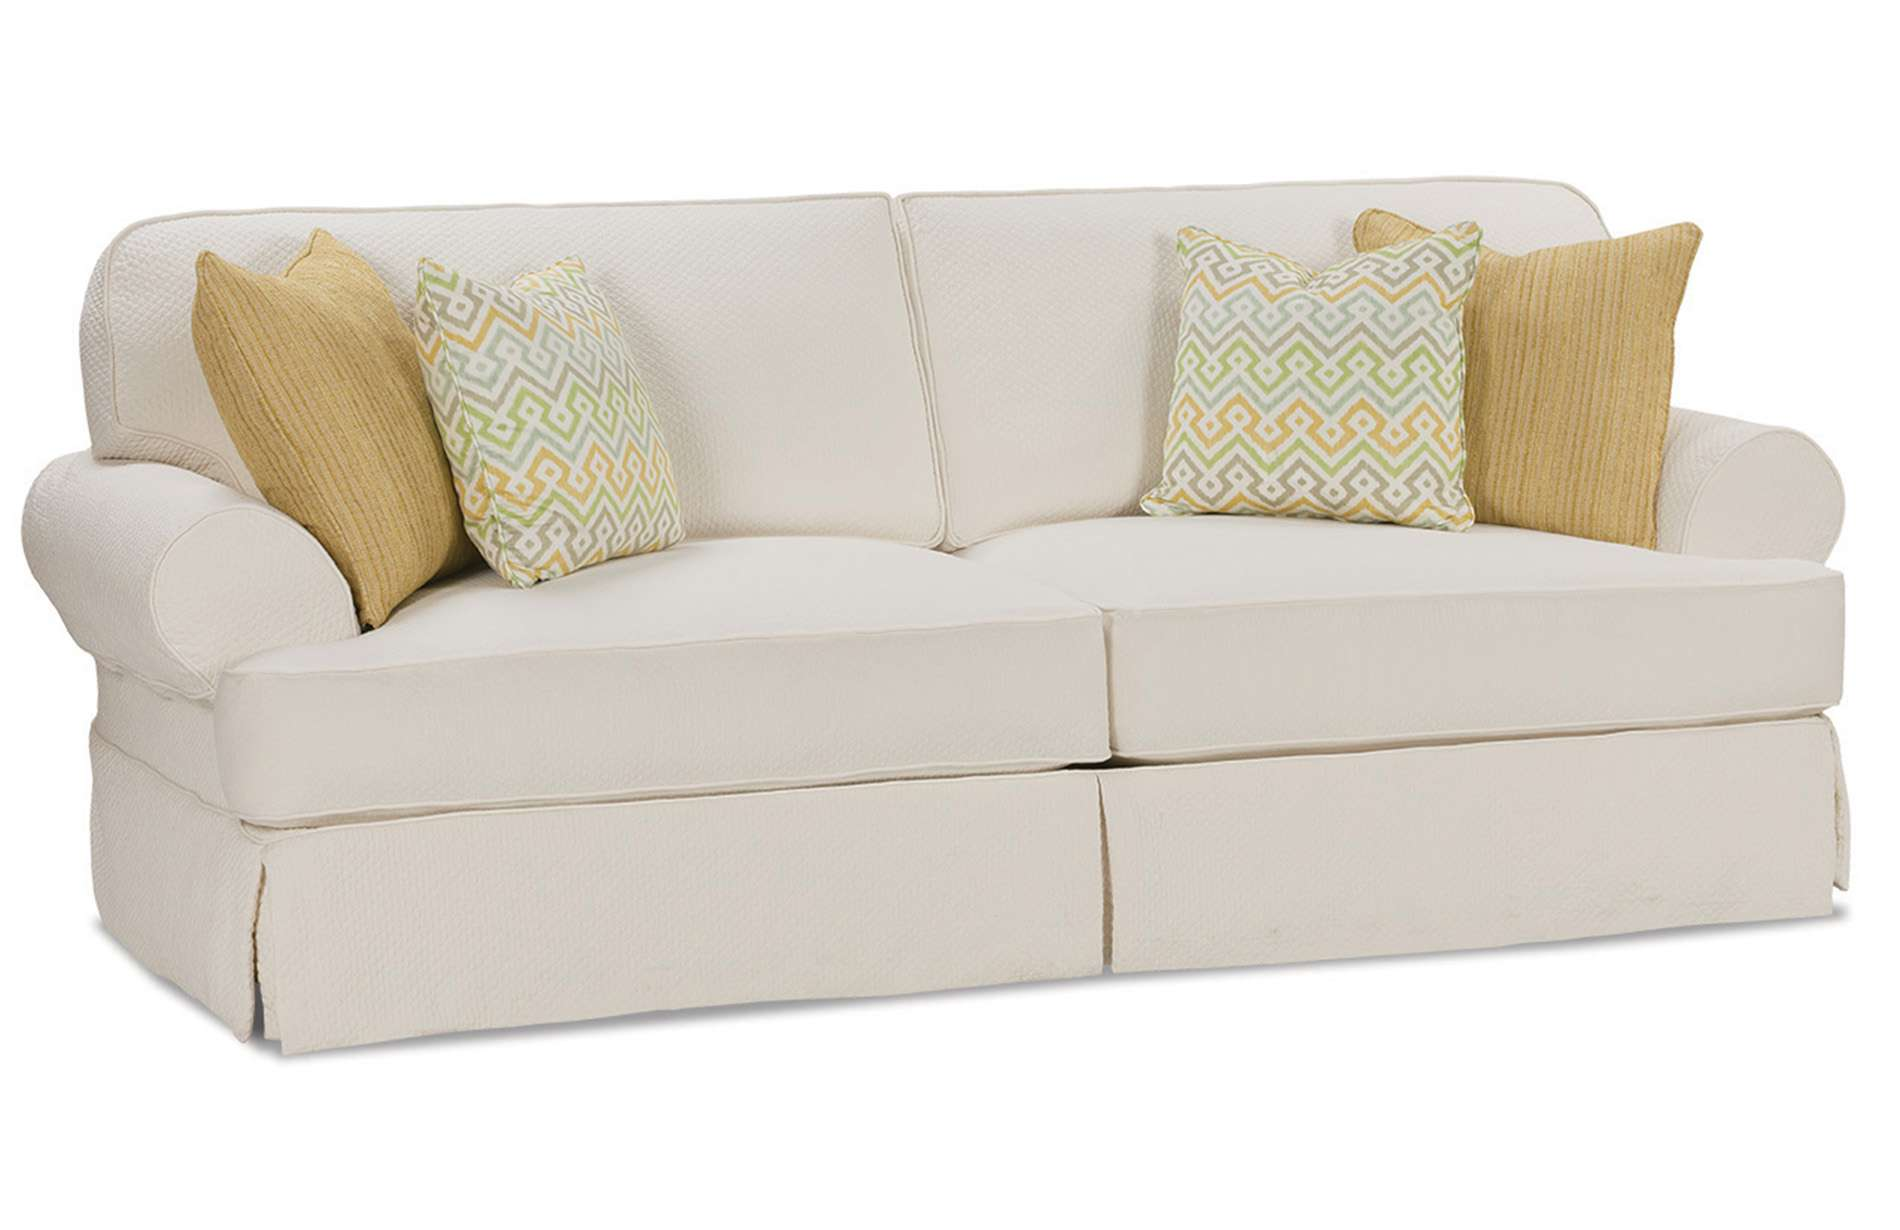 Martin Queen Sleeper Sofa By Rowe Furniture Concepts